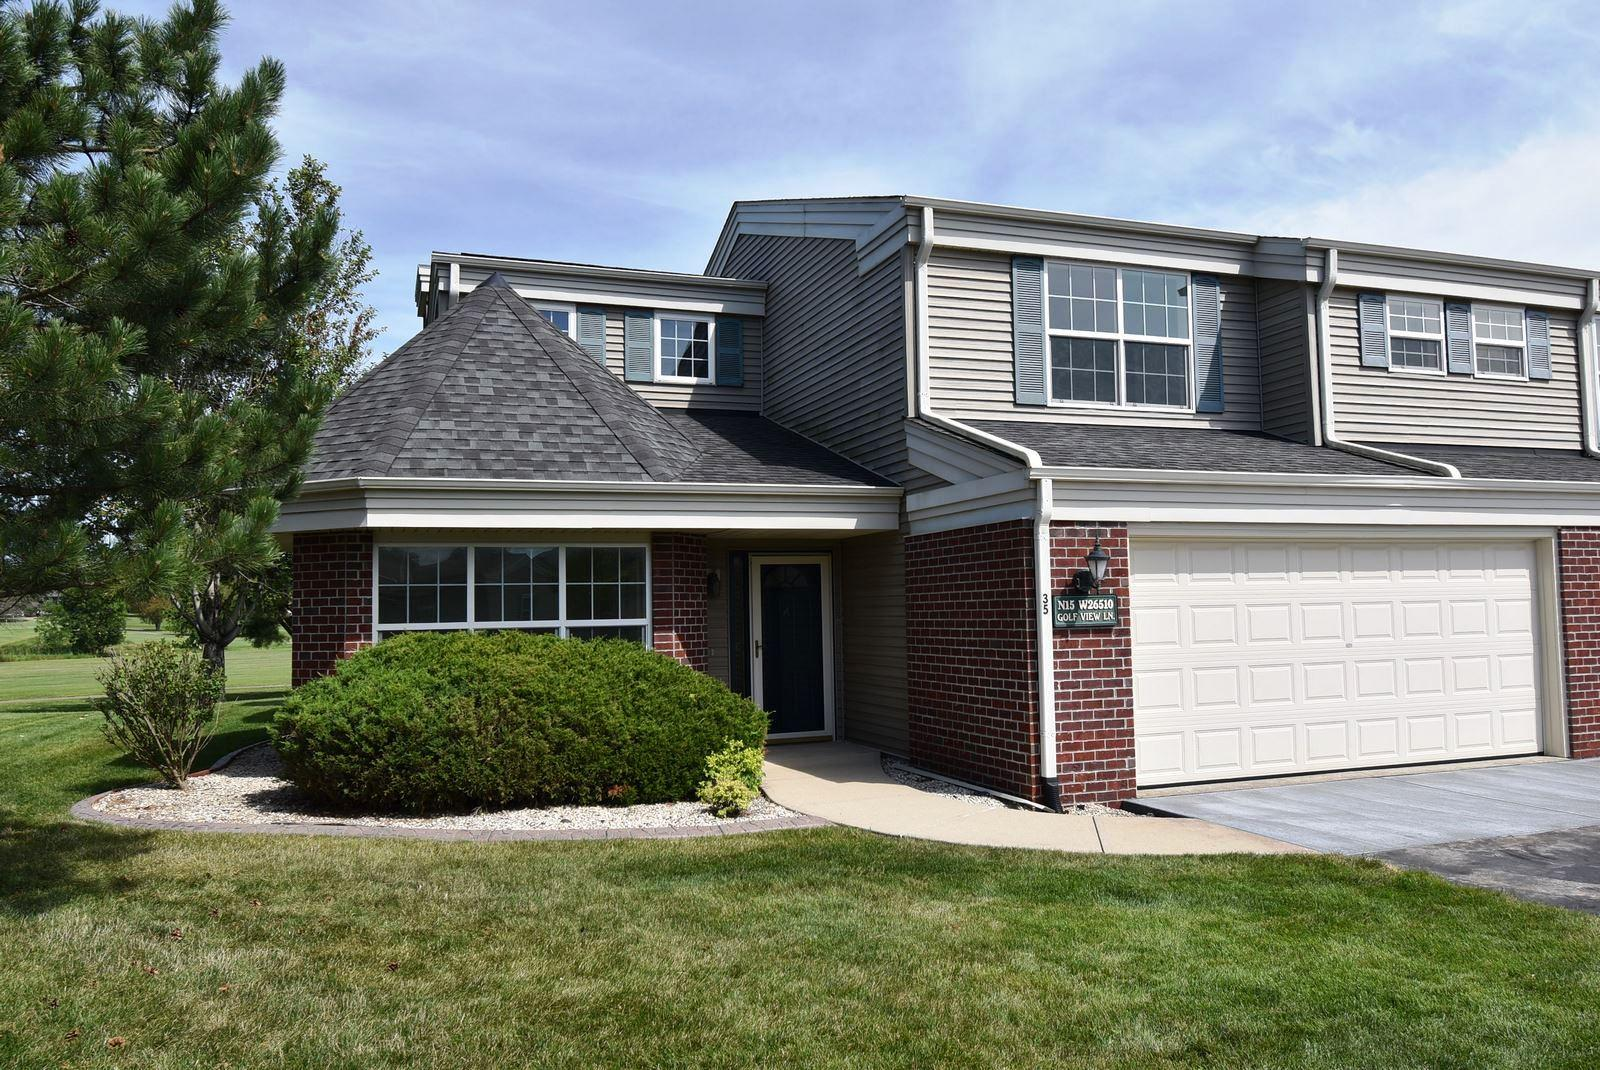 N15W26510 Golf View Ln, Pewaukee, Wisconsin 53072, 2 Bedrooms Bedrooms, 7 Rooms Rooms,2 BathroomsBathrooms,Condominiums,For Sale,Golf View Ln,1,1701691